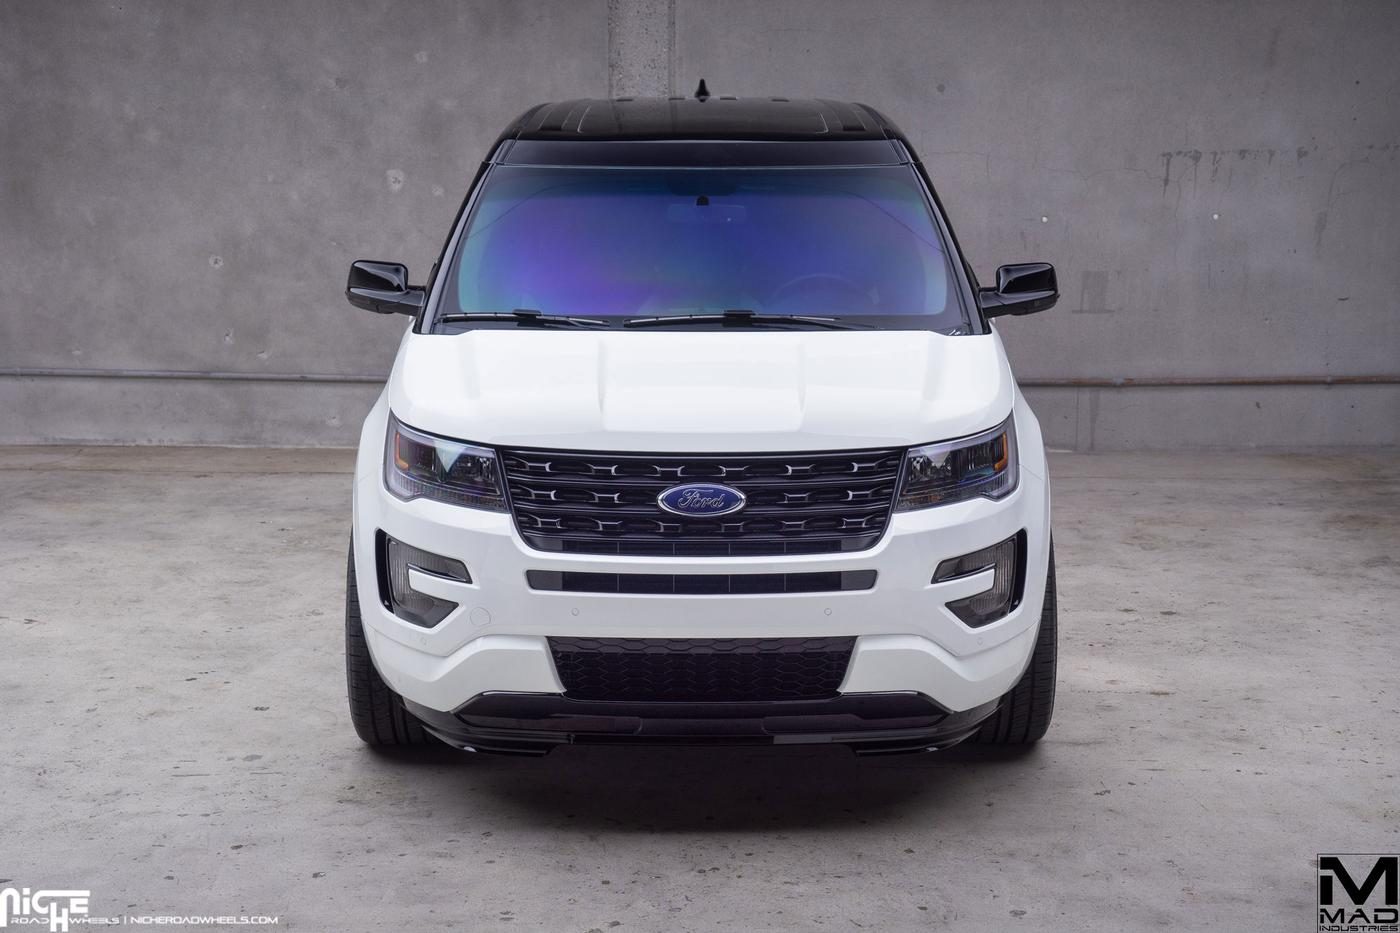 2016 Ford Explorer Mad Industries Niche Alpine Mht